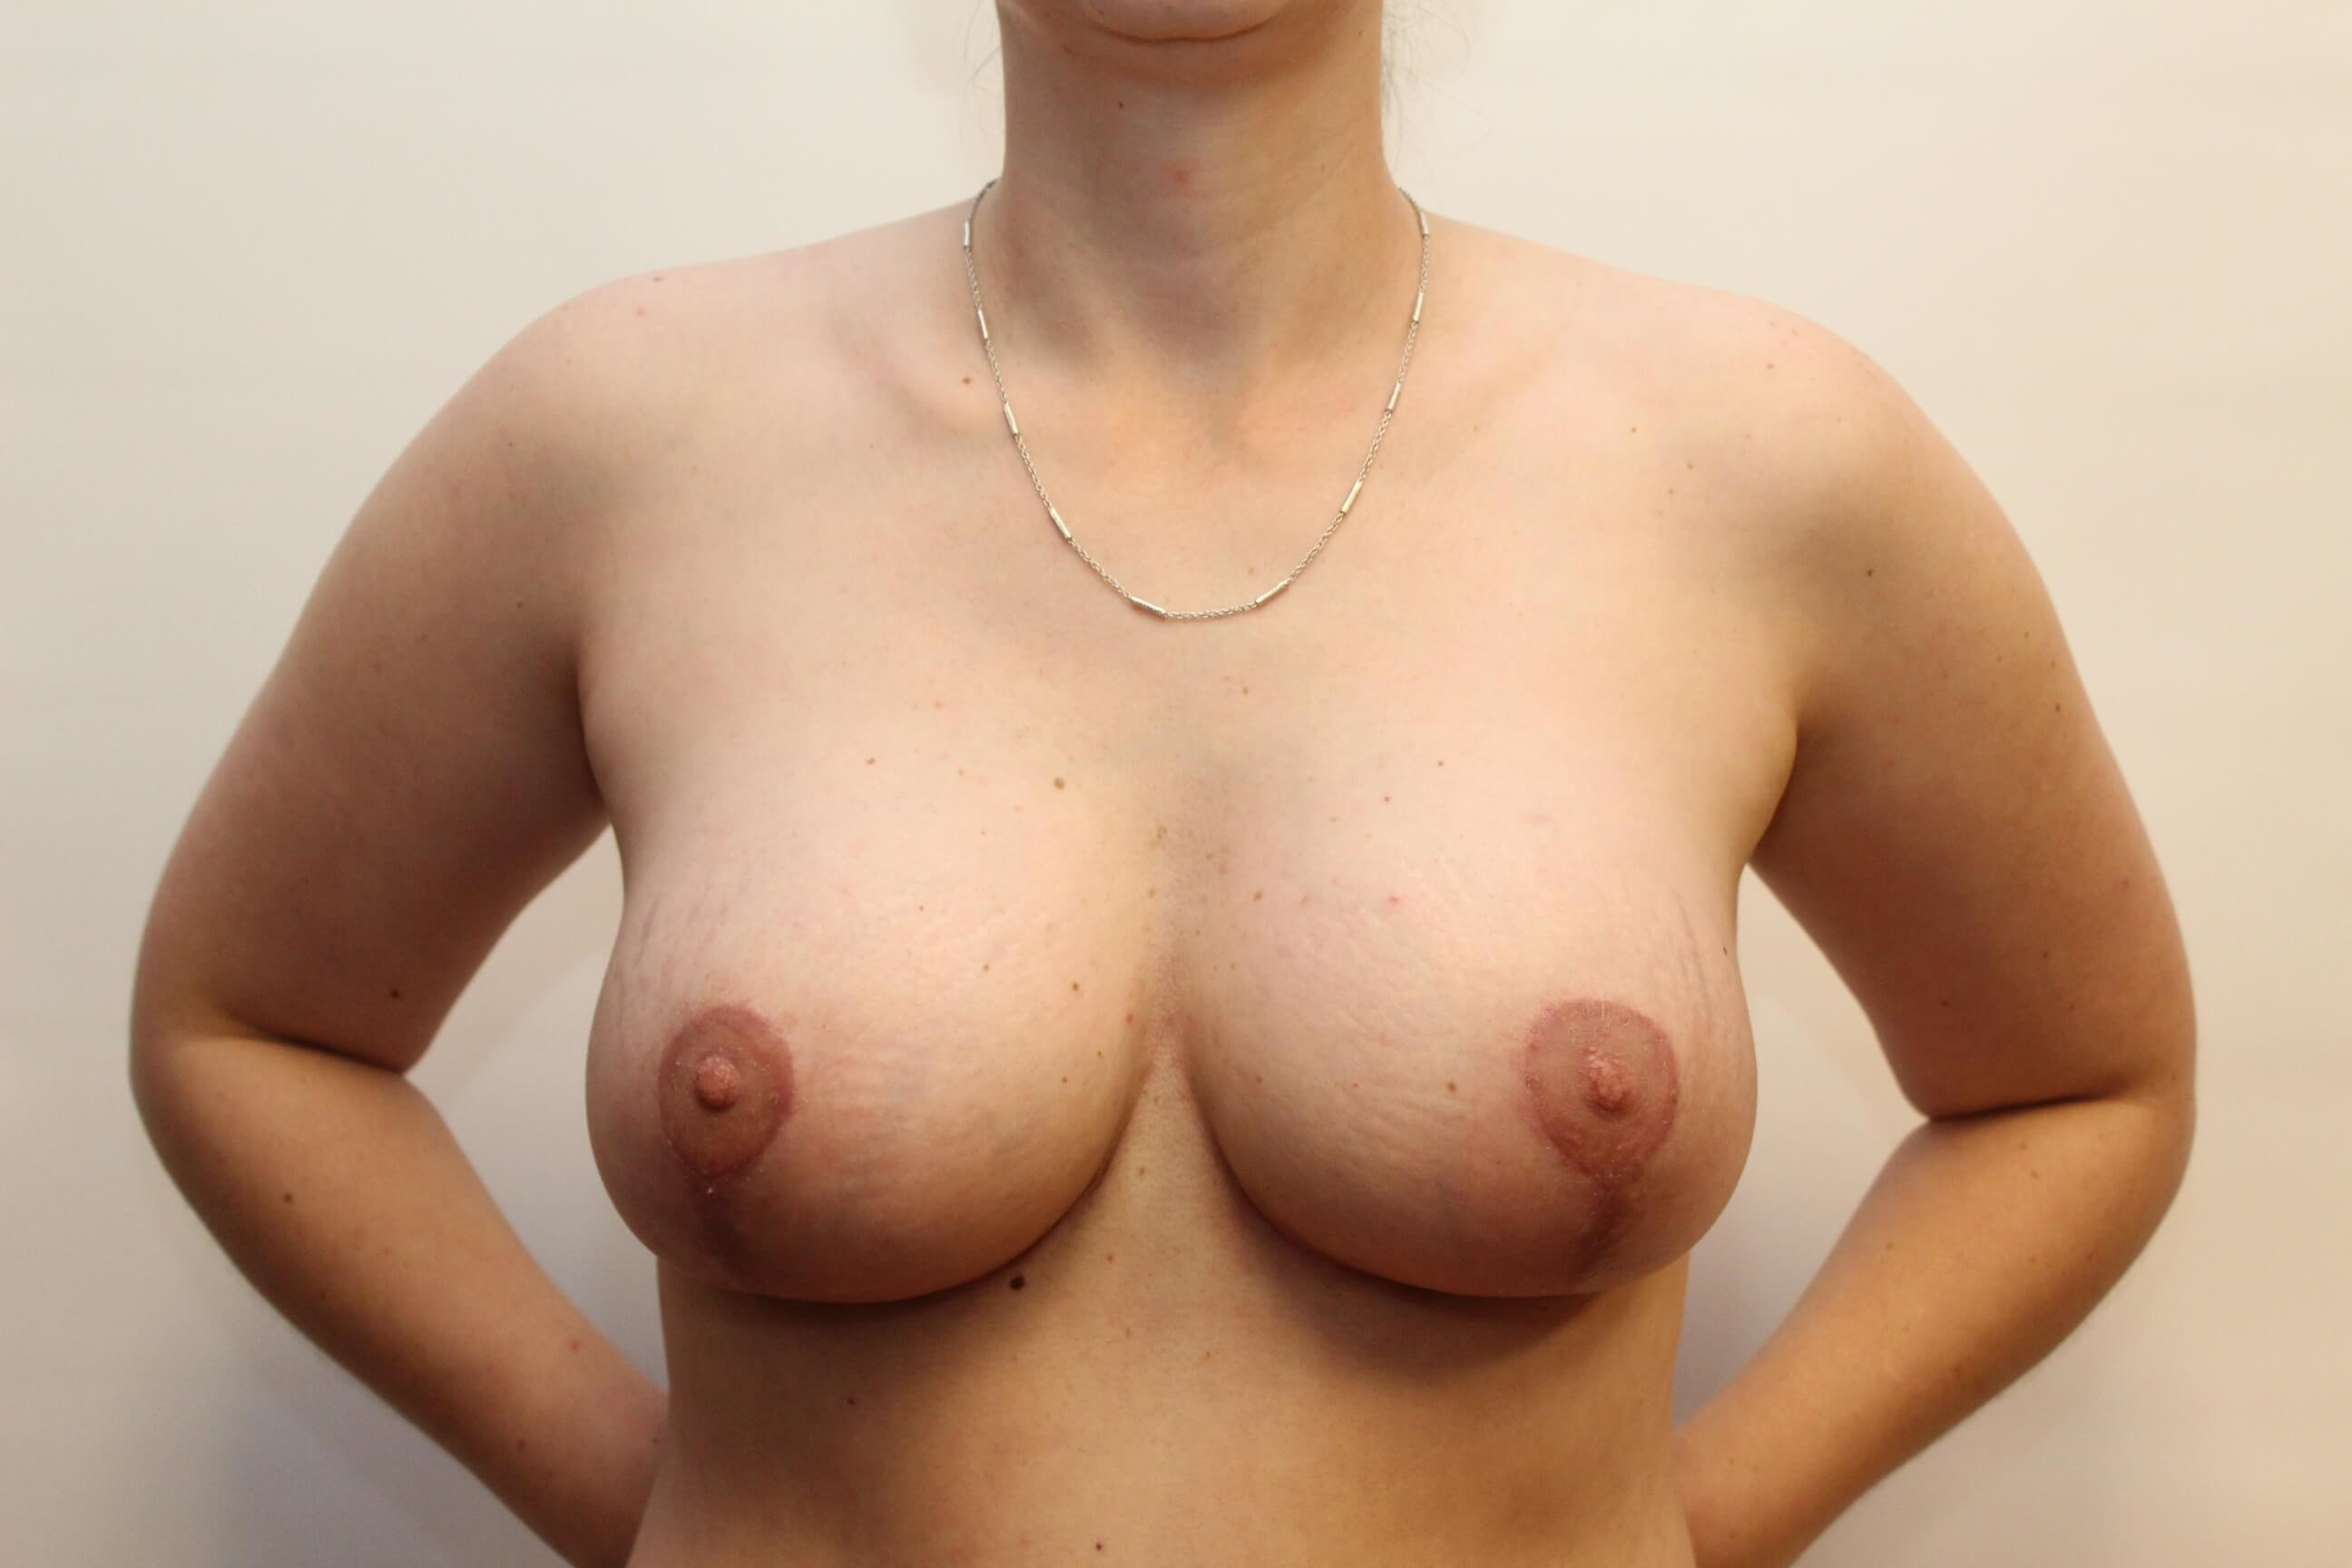 Front View of Breast After